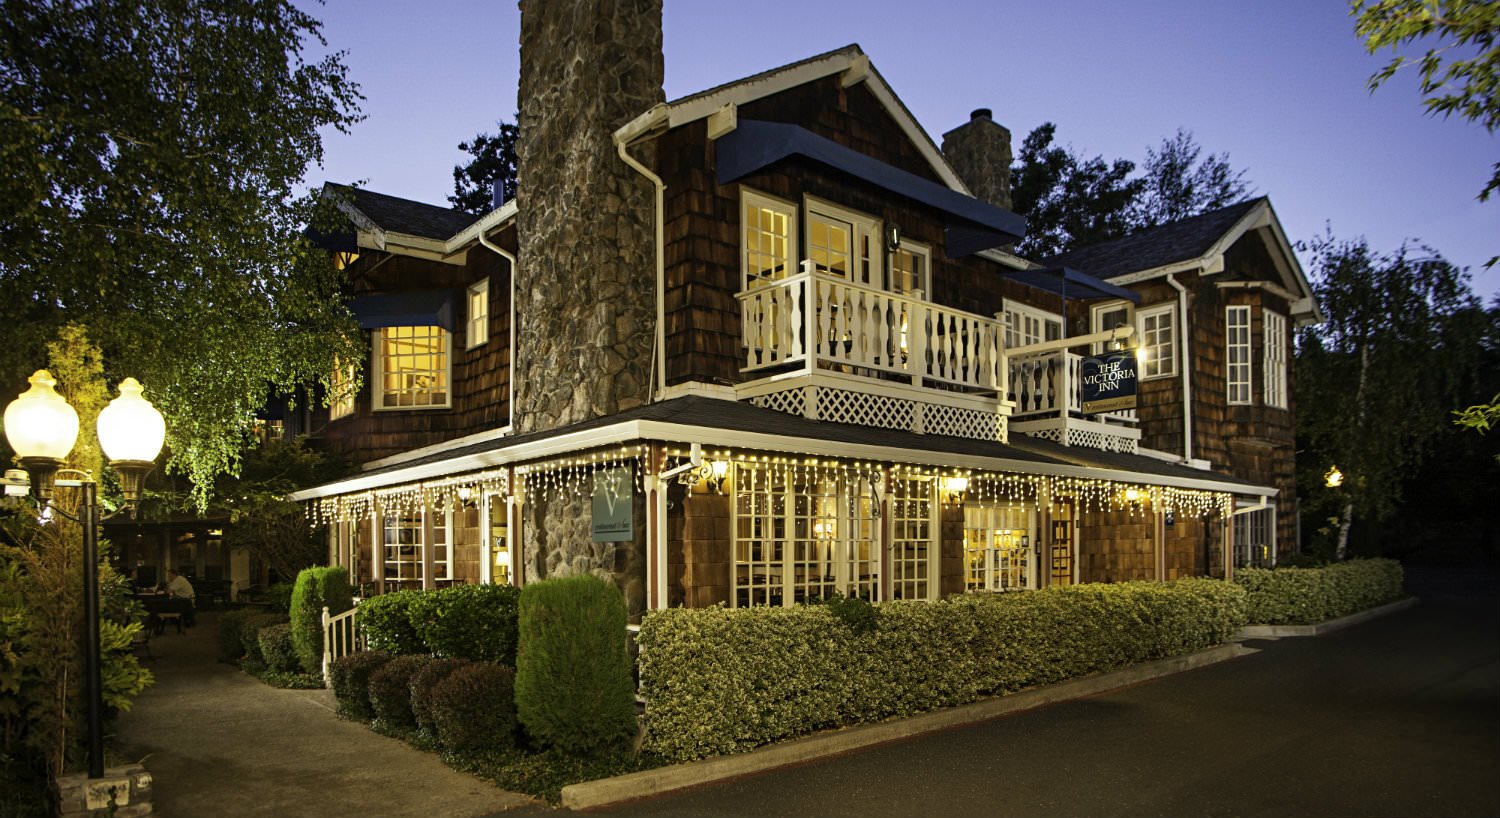 Exterior of inn at dusk with cedar shake siding and white trim, lit windows surrounded by trees and manicured shrubs